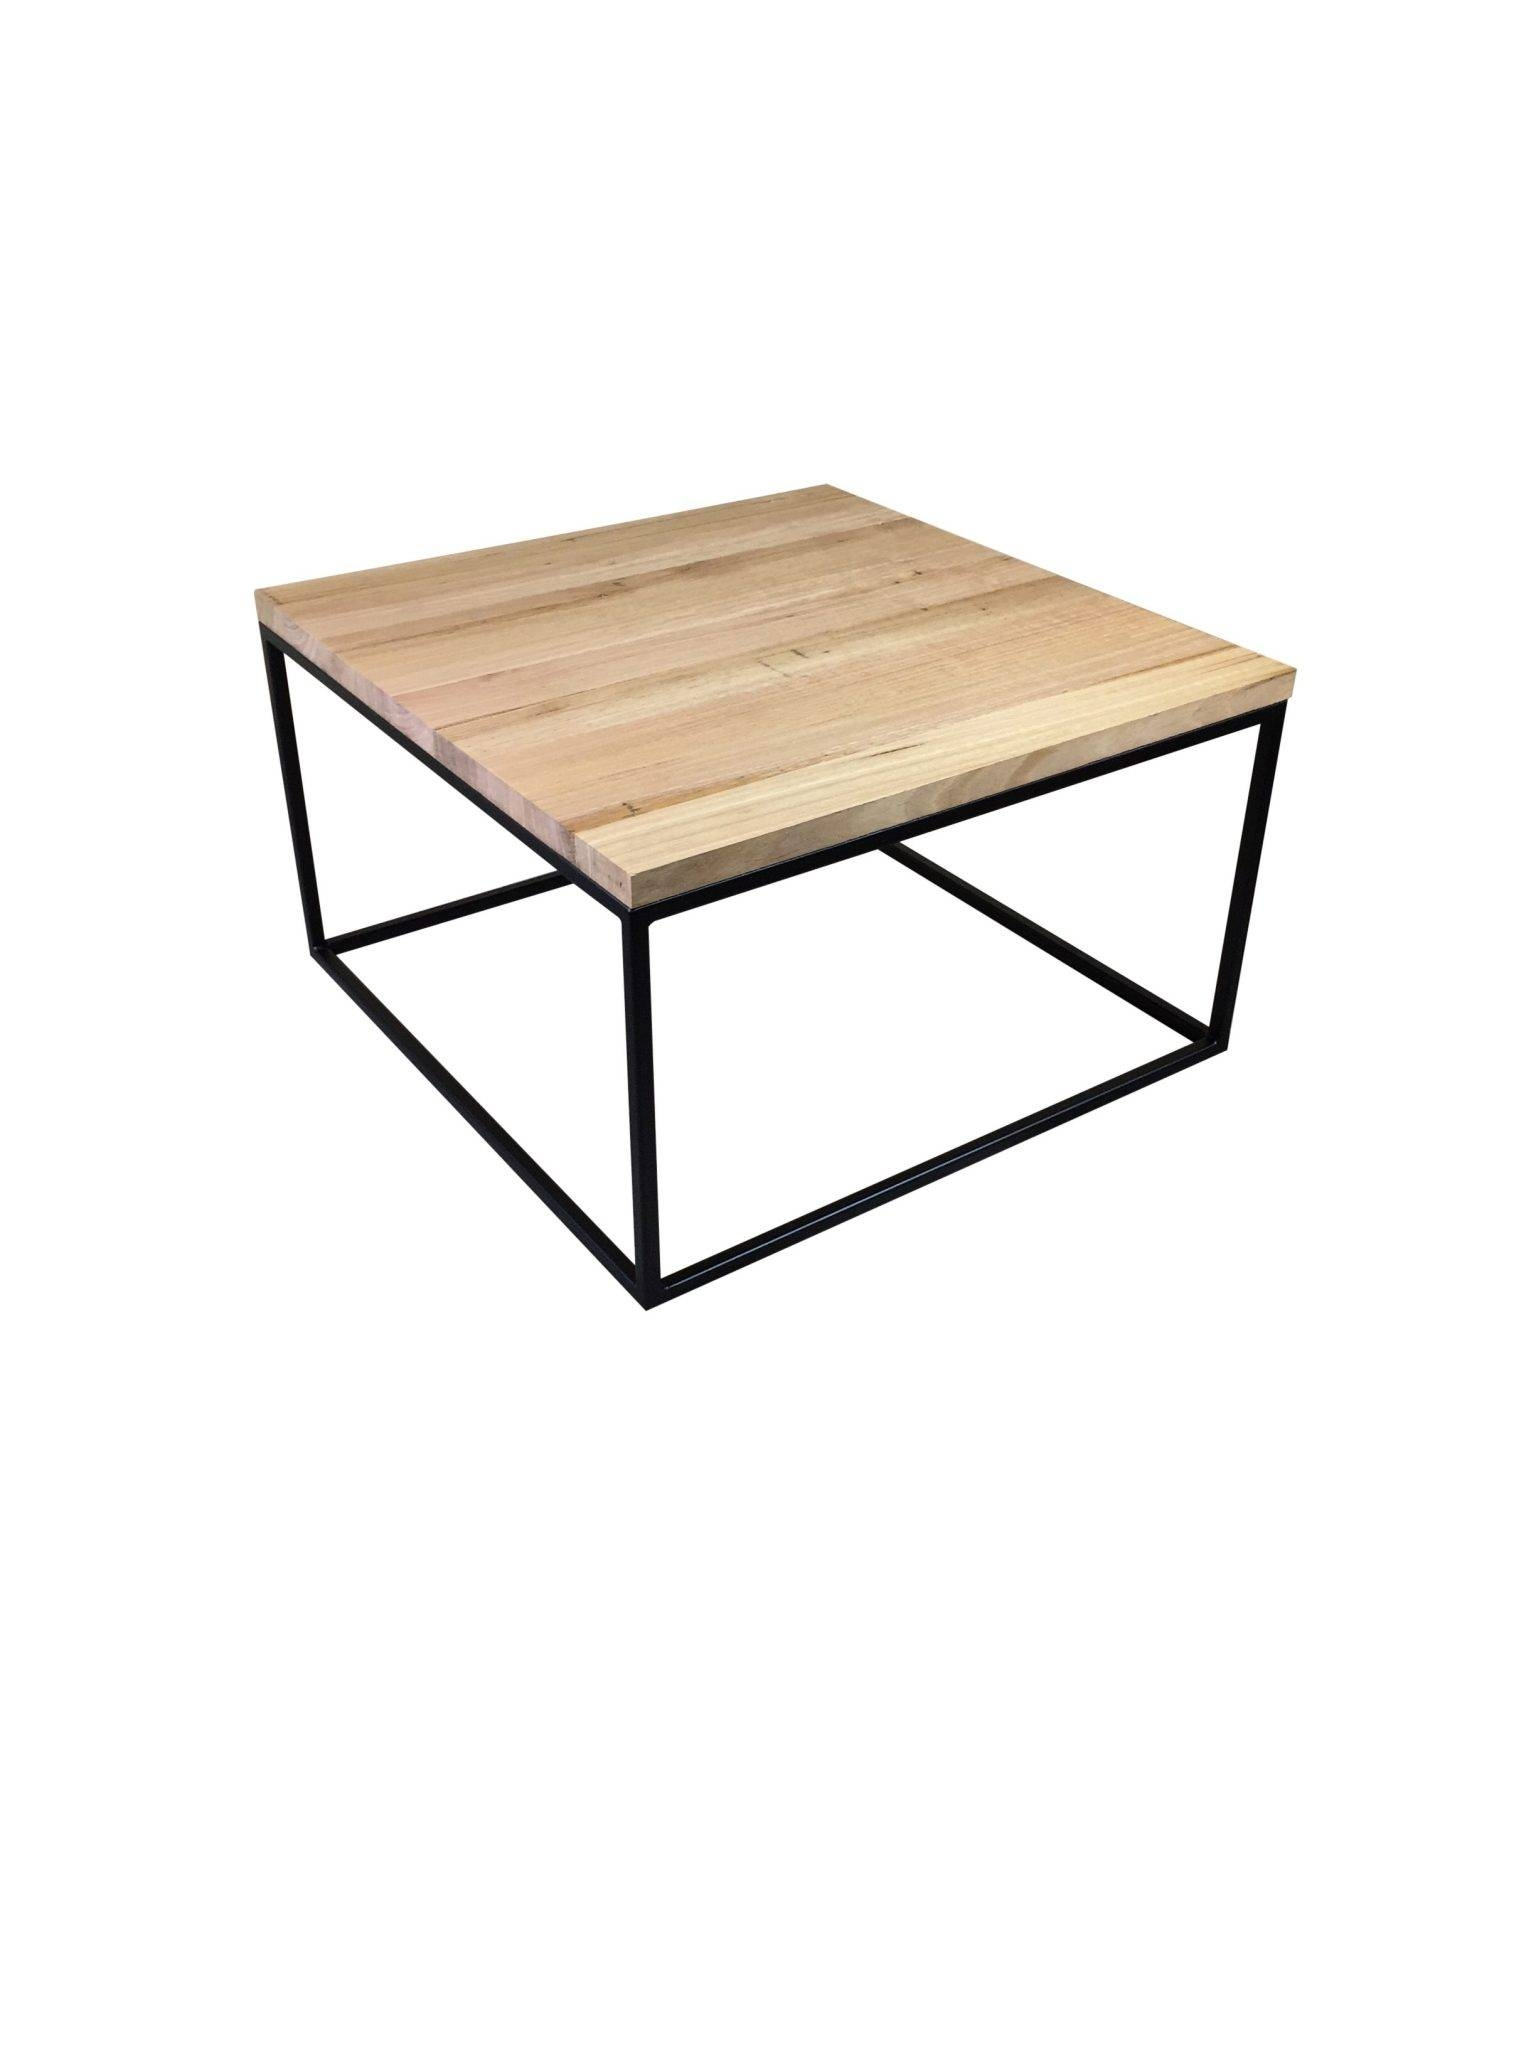 Madison Coffee Table - Lumber Furniture intended for Madison Coffee Tables (Image 21 of 30)